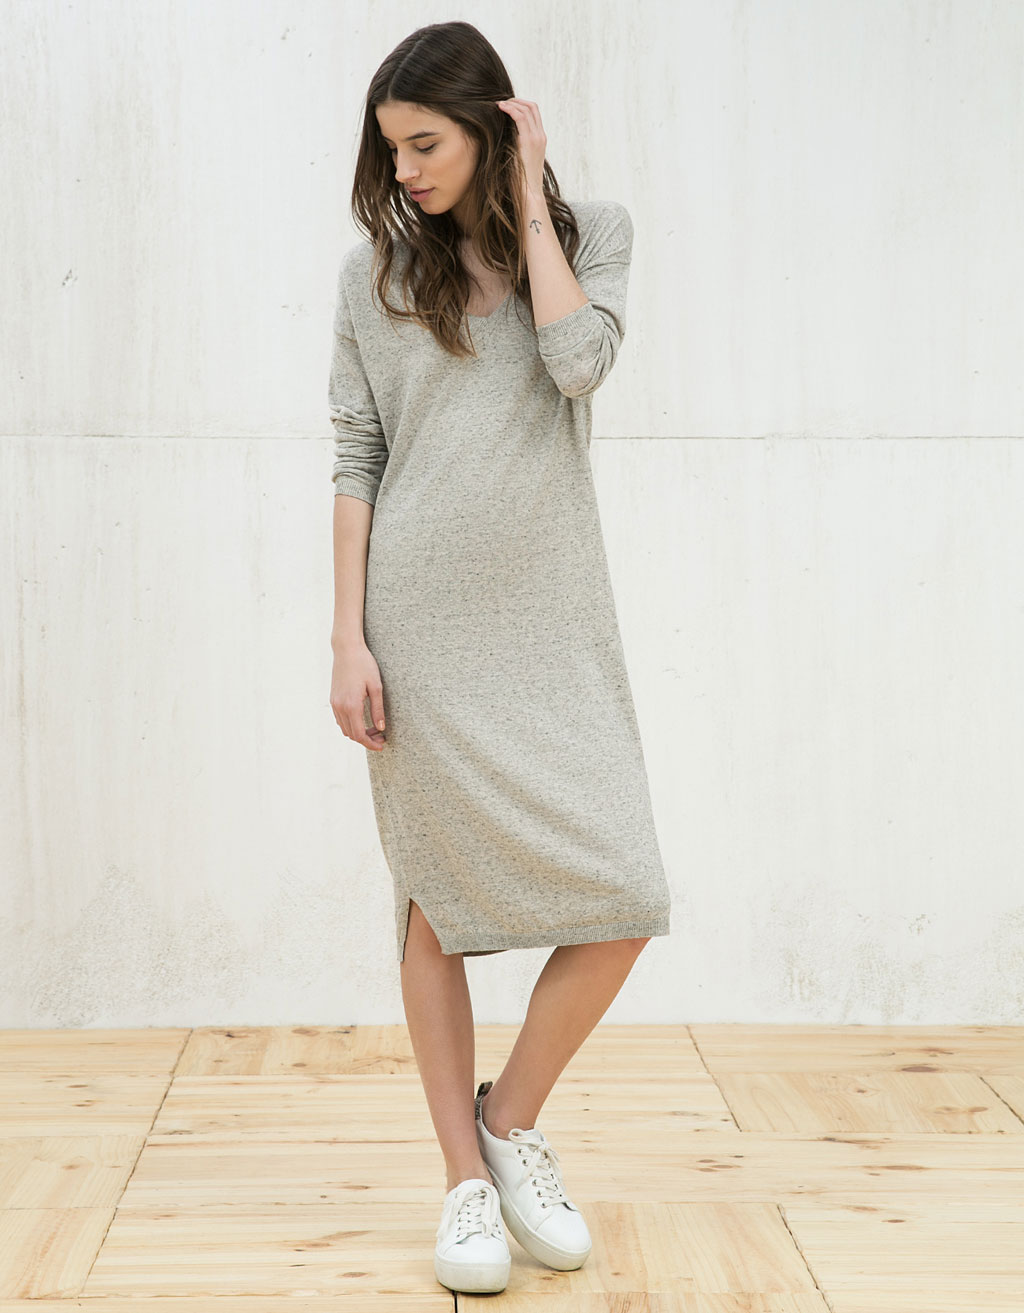 Plain V-neck dress